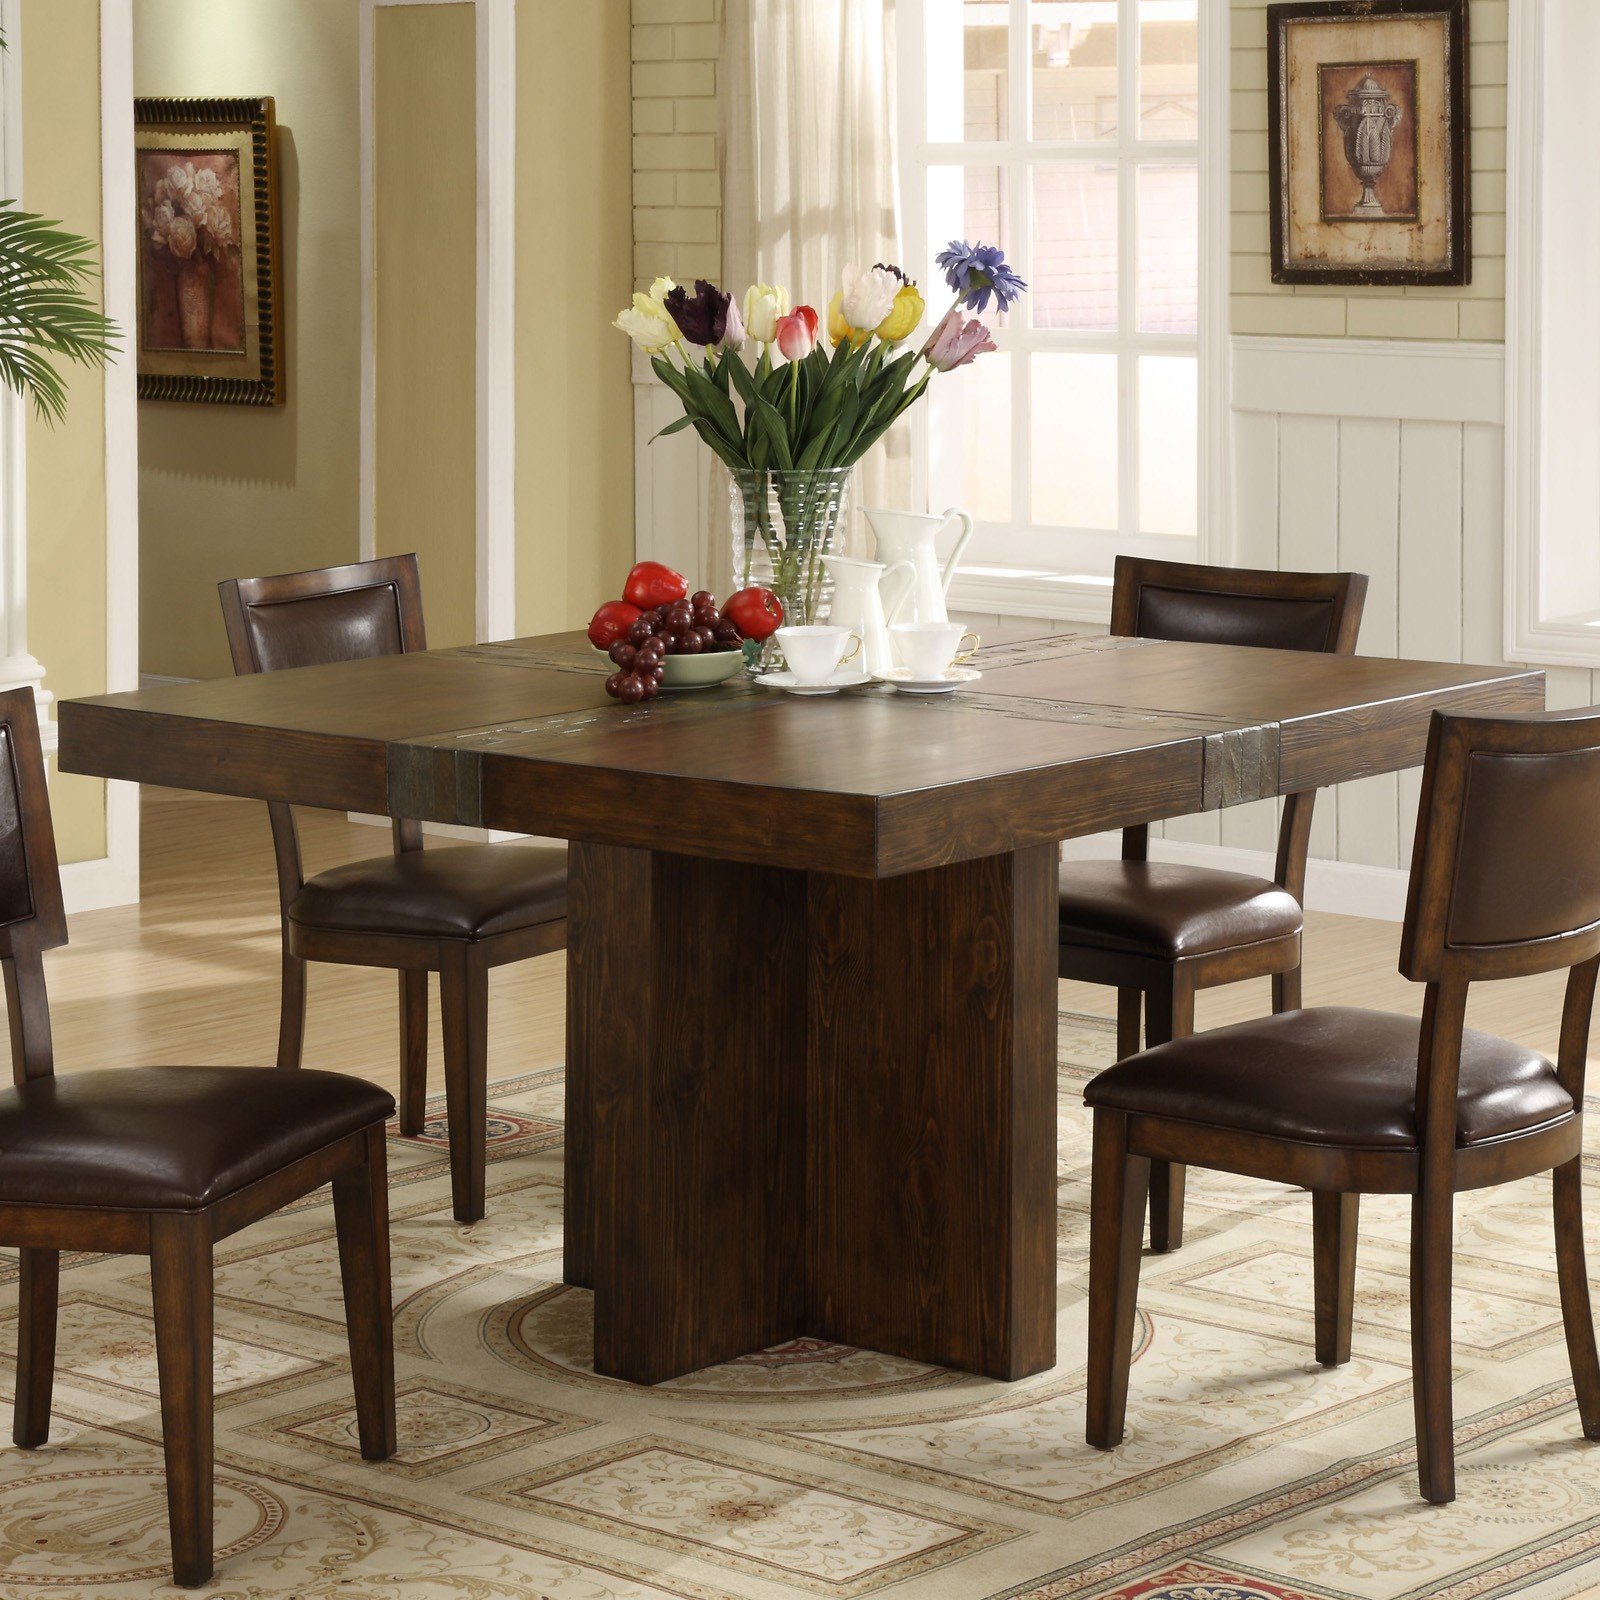 square dining room table seats 8 ideas on foter rh foter com